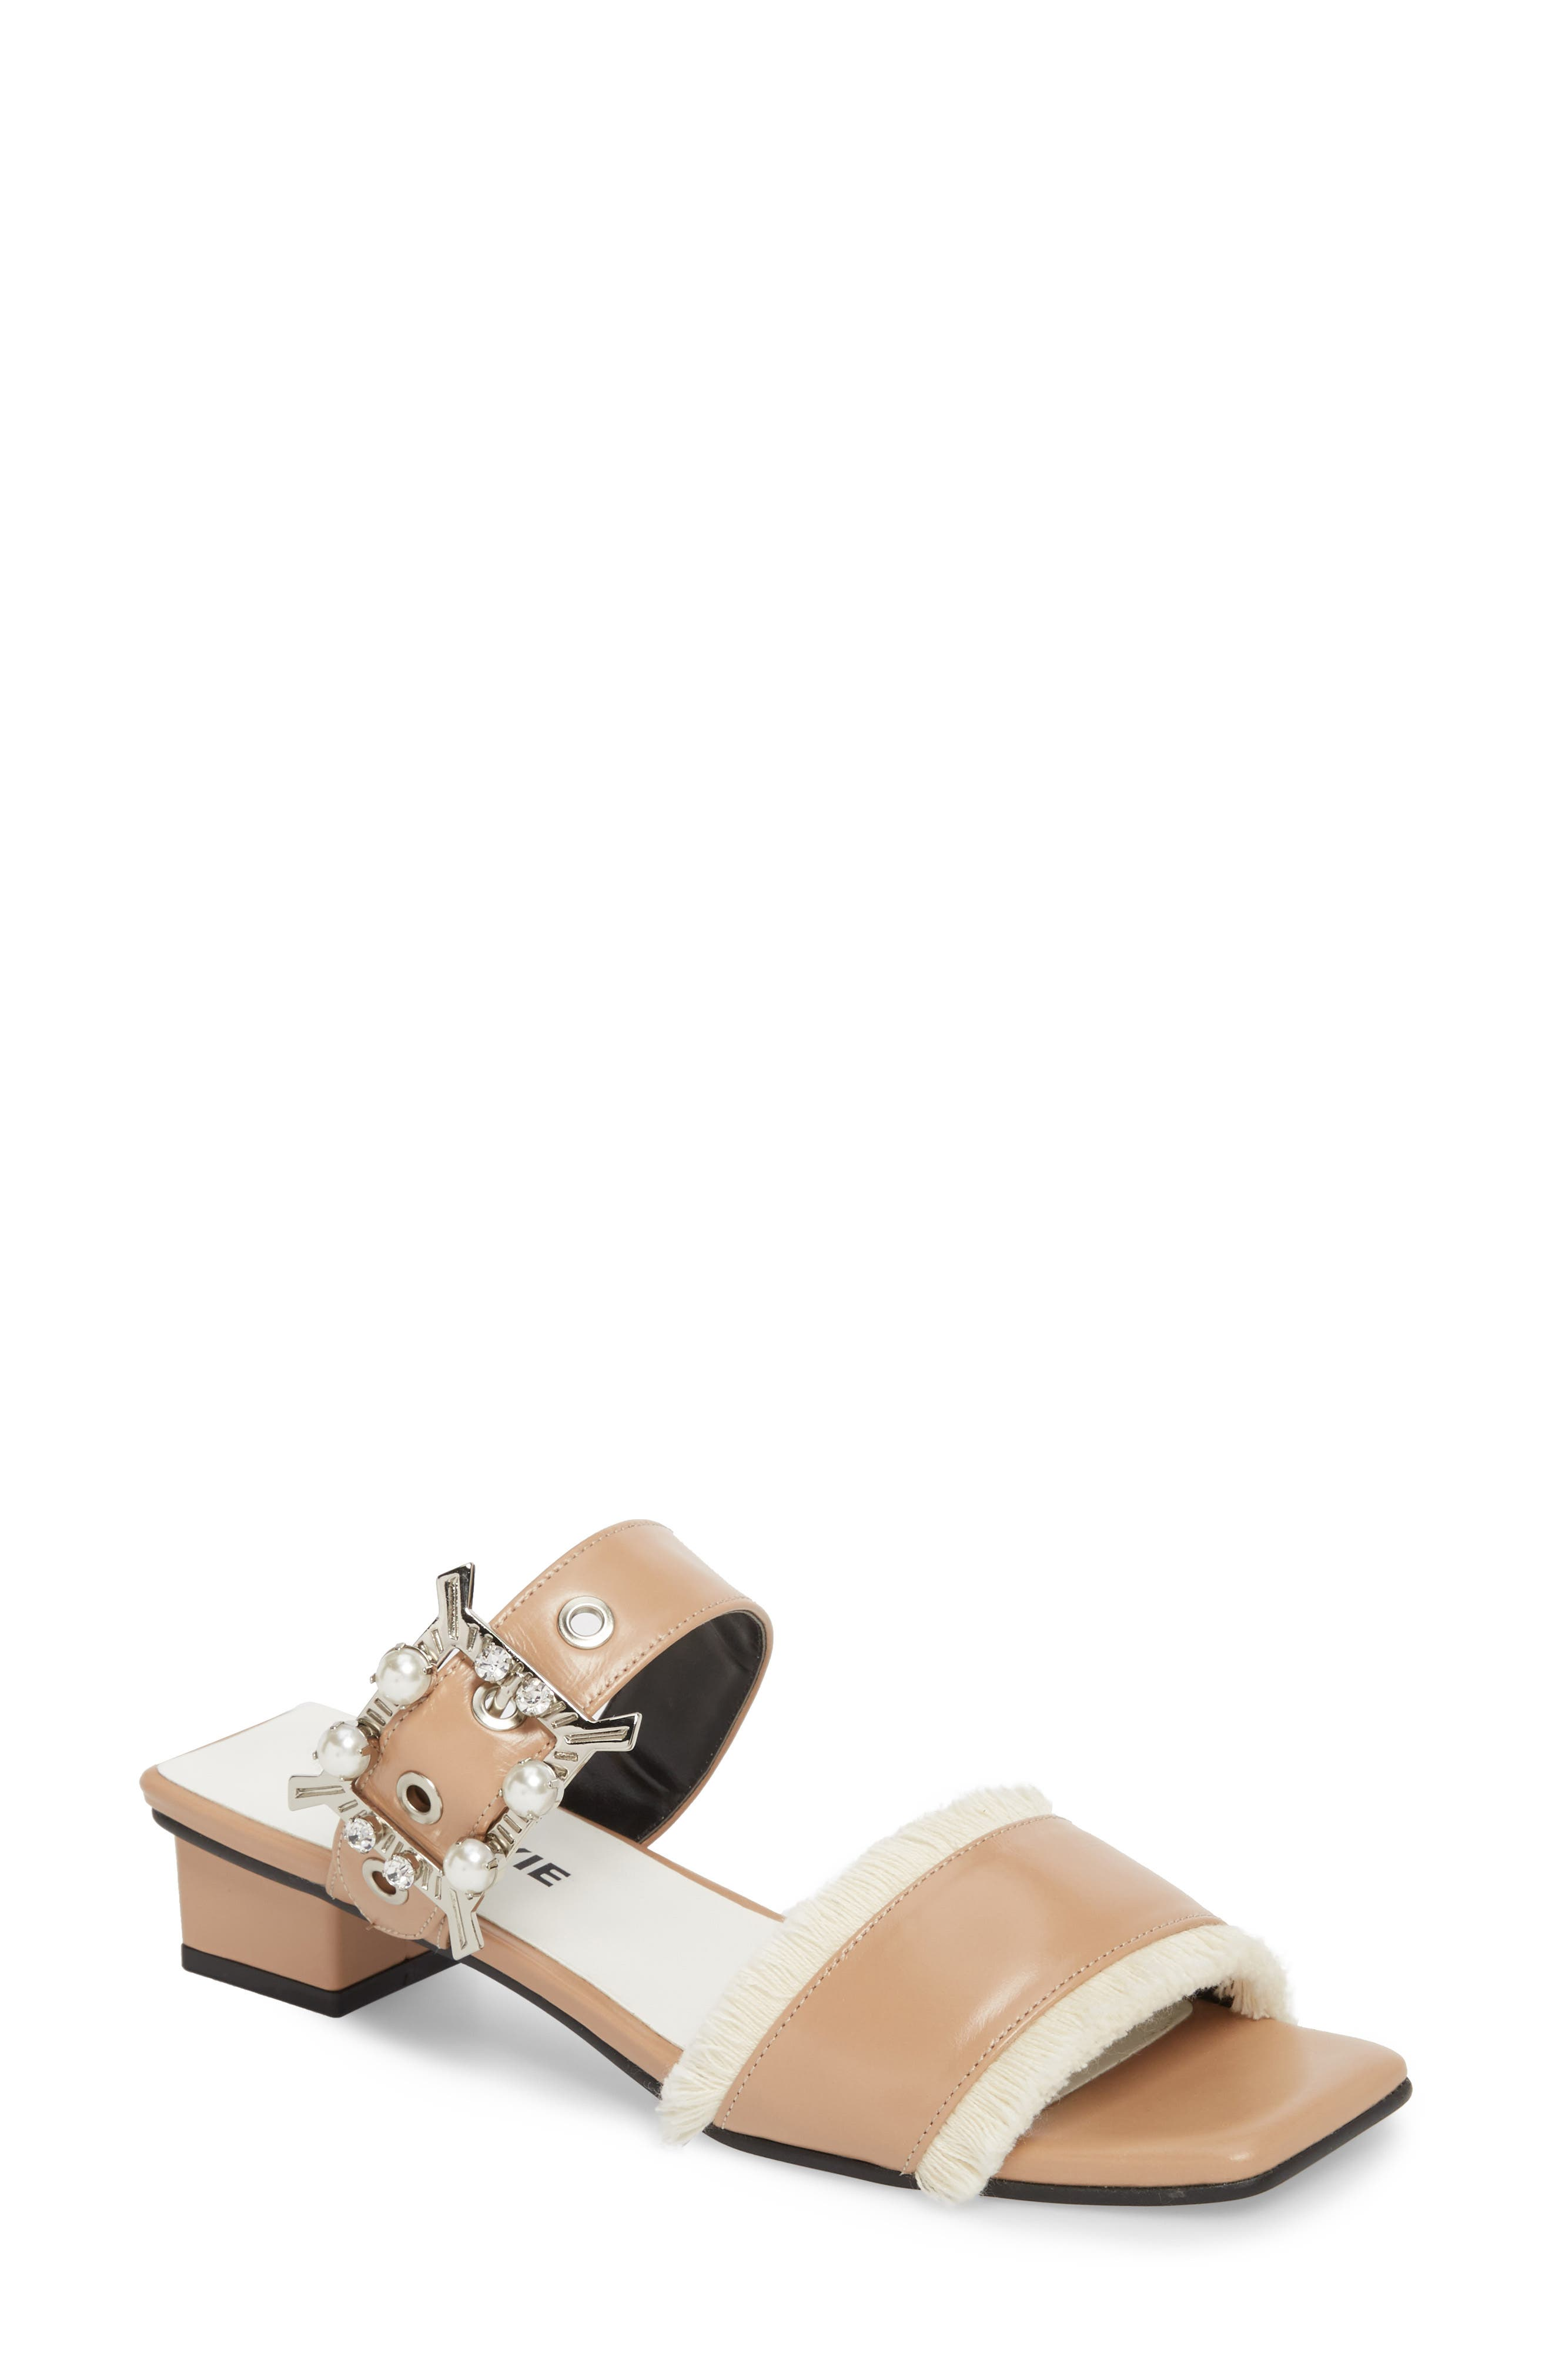 Embellished Slide Sandal,                             Main thumbnail 1, color,                             Skin Beige